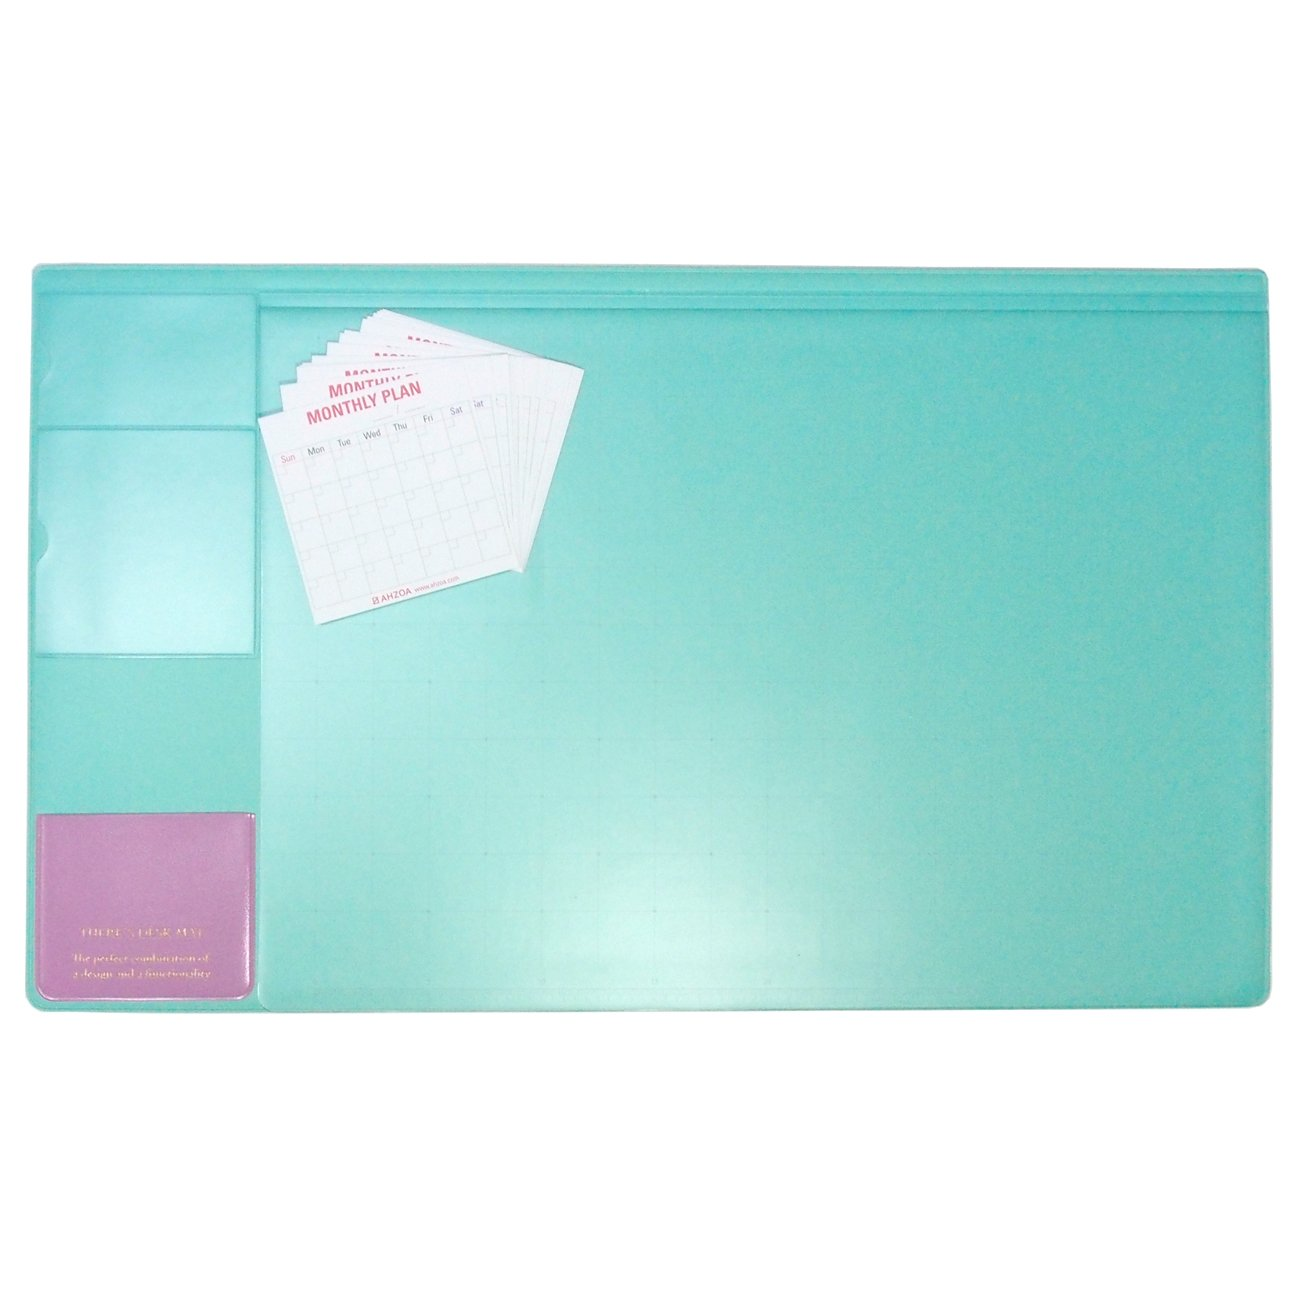 There`s 21 X 13 Inch Desk Pad with AHZOA 14 Monthly Calendar Cards (Cool Mint)